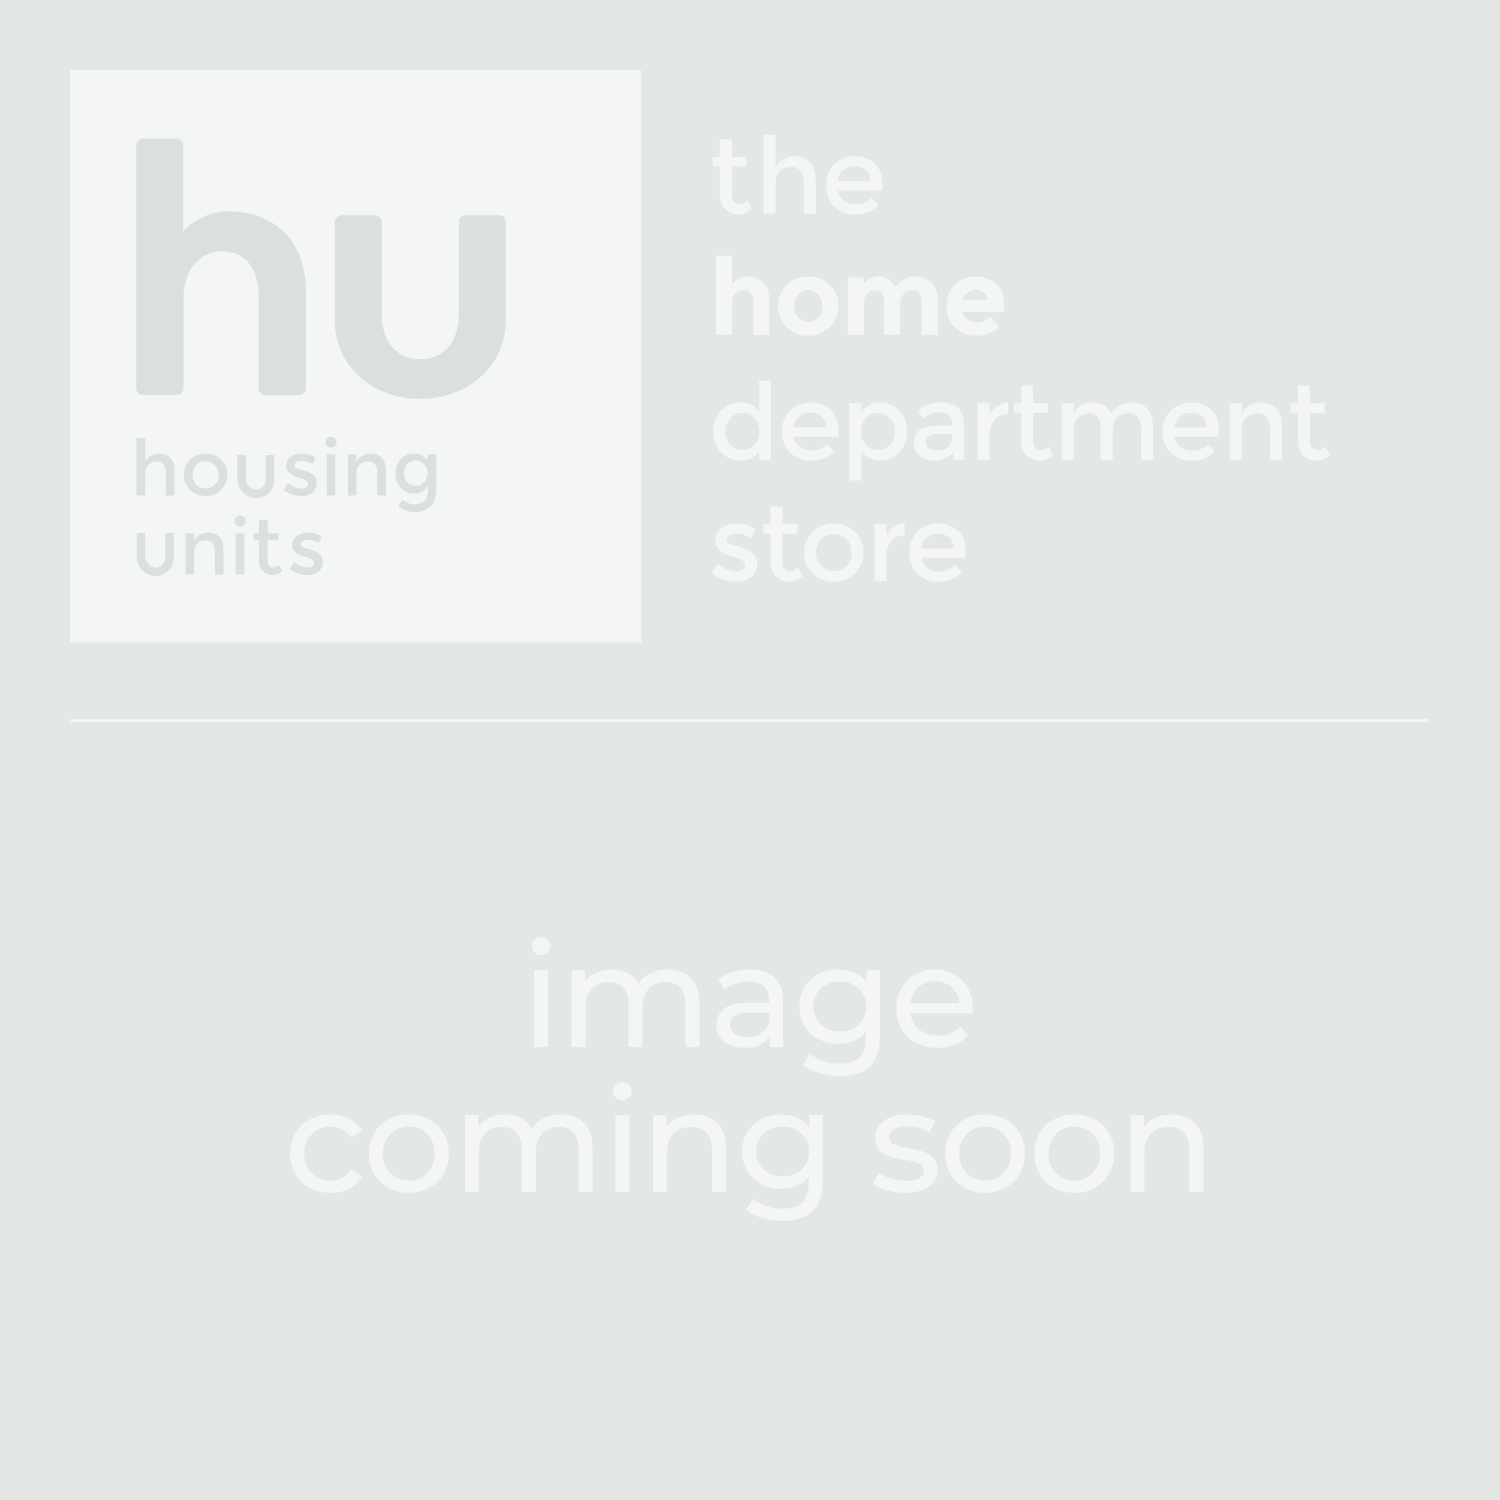 Rebecca Mirrored Superking Bed Frame - Lifestyle | Housing Units